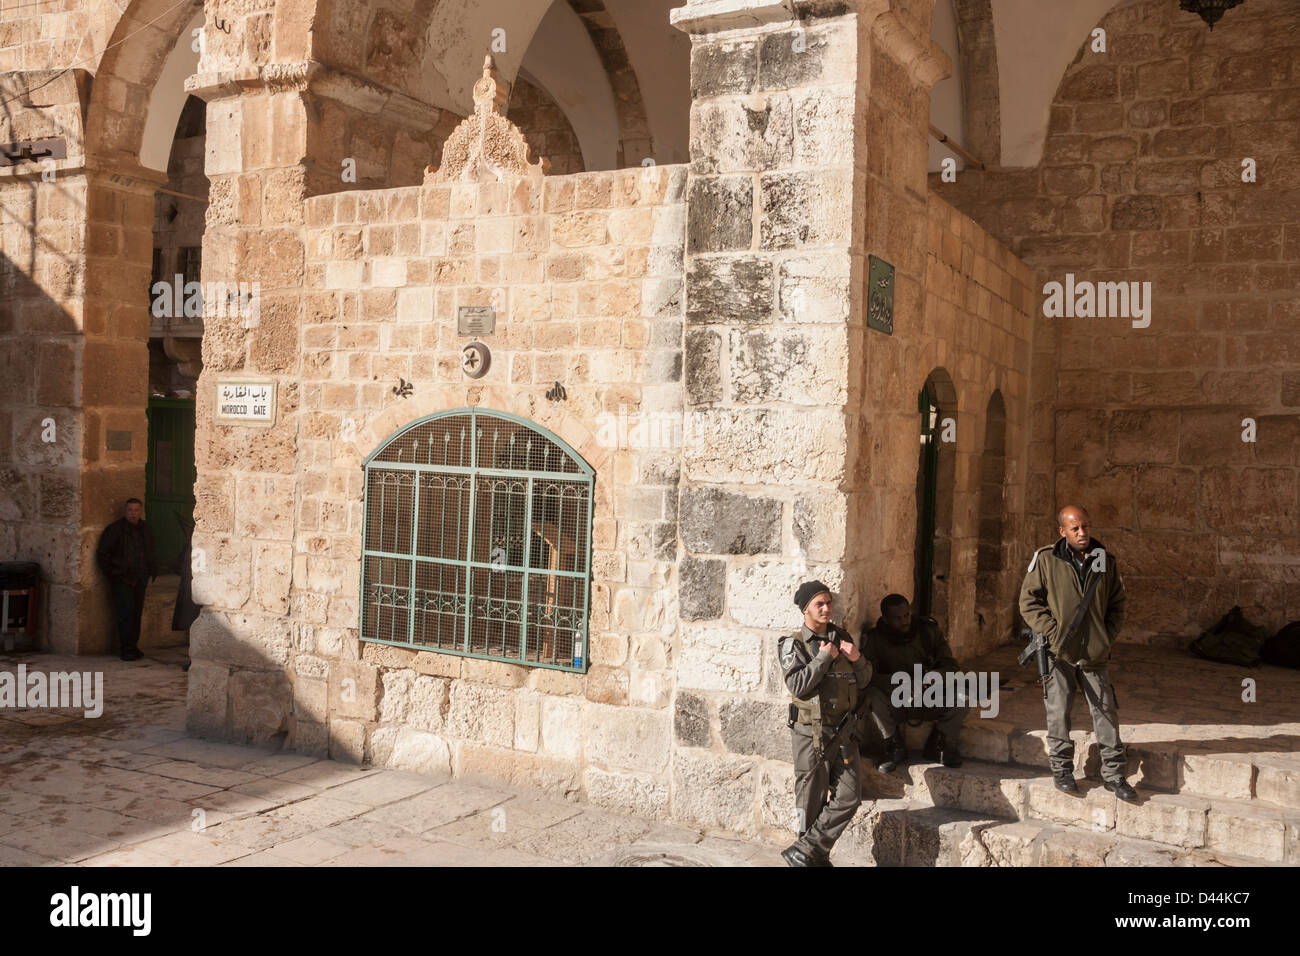 SONY DSCJerusalem, Israel. Israeli paramilitary police stand near the 'Moroccan gate' on the temple mount. - Stock Image